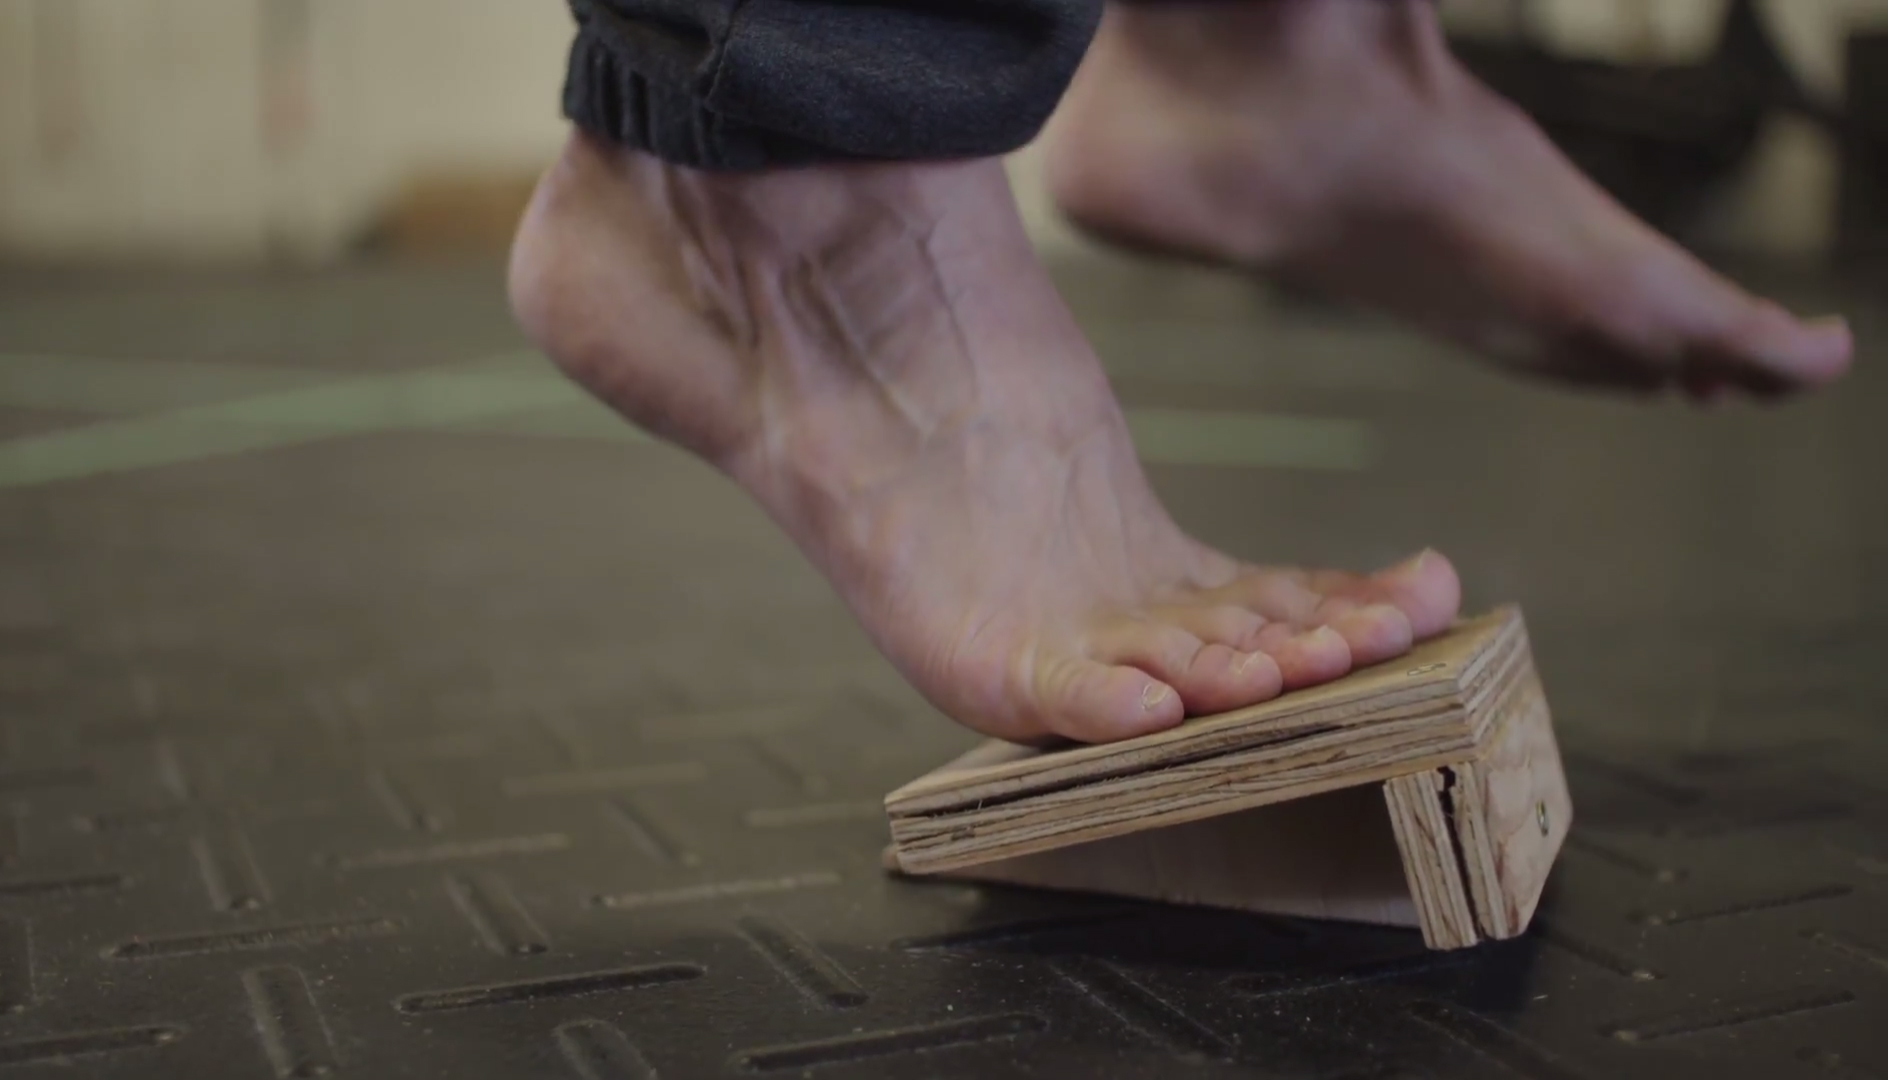 How to build your own slant board For Improved Foot Strength & Flexibility